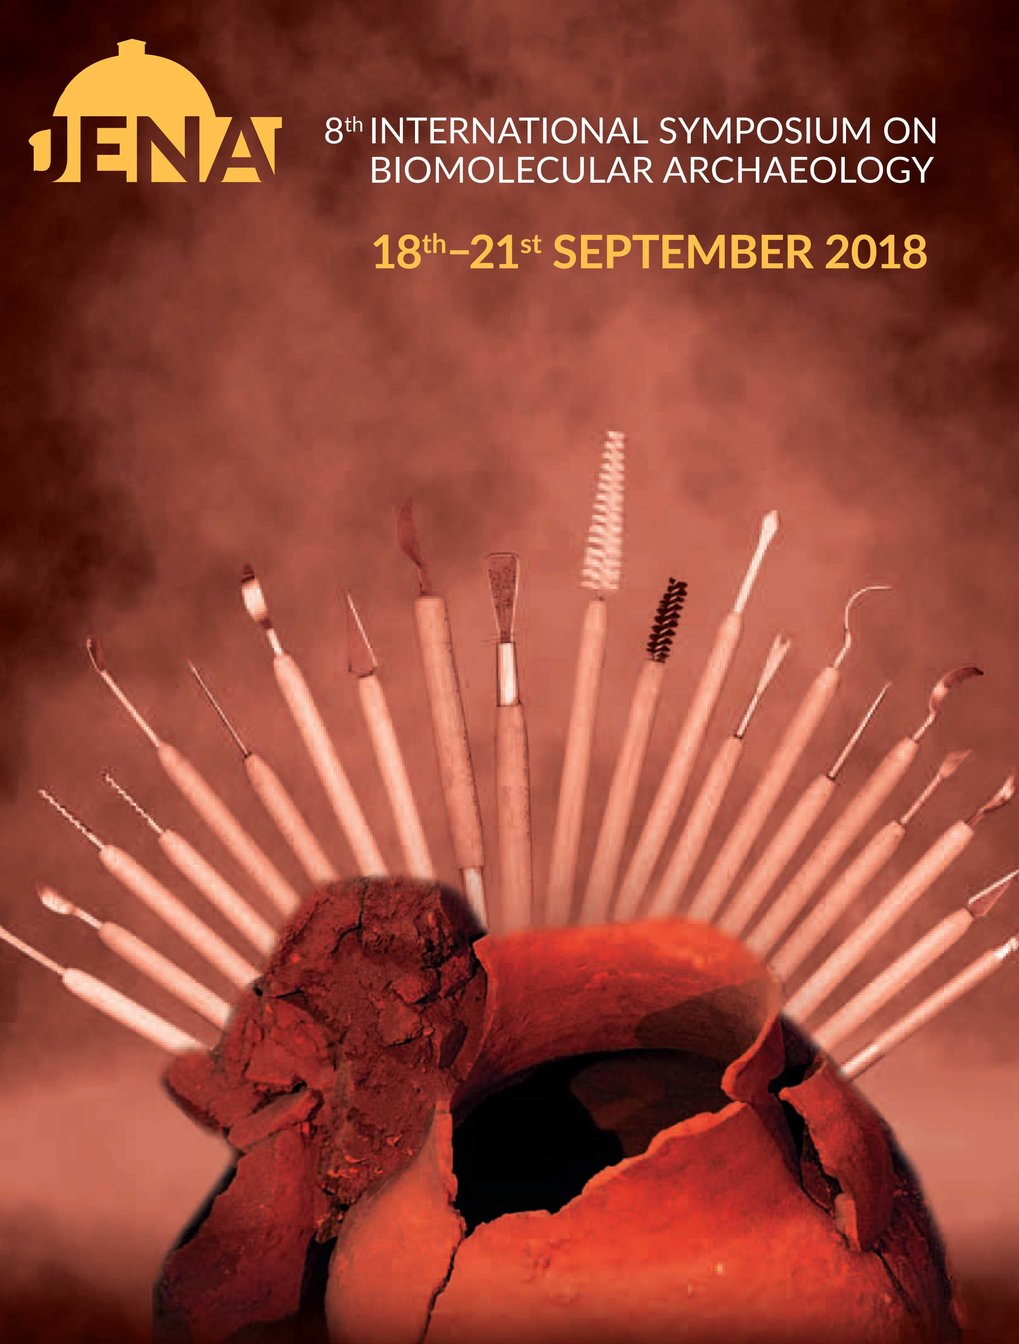 8th International Symposium on Biomolecular Archaeology (ISBA) 2018